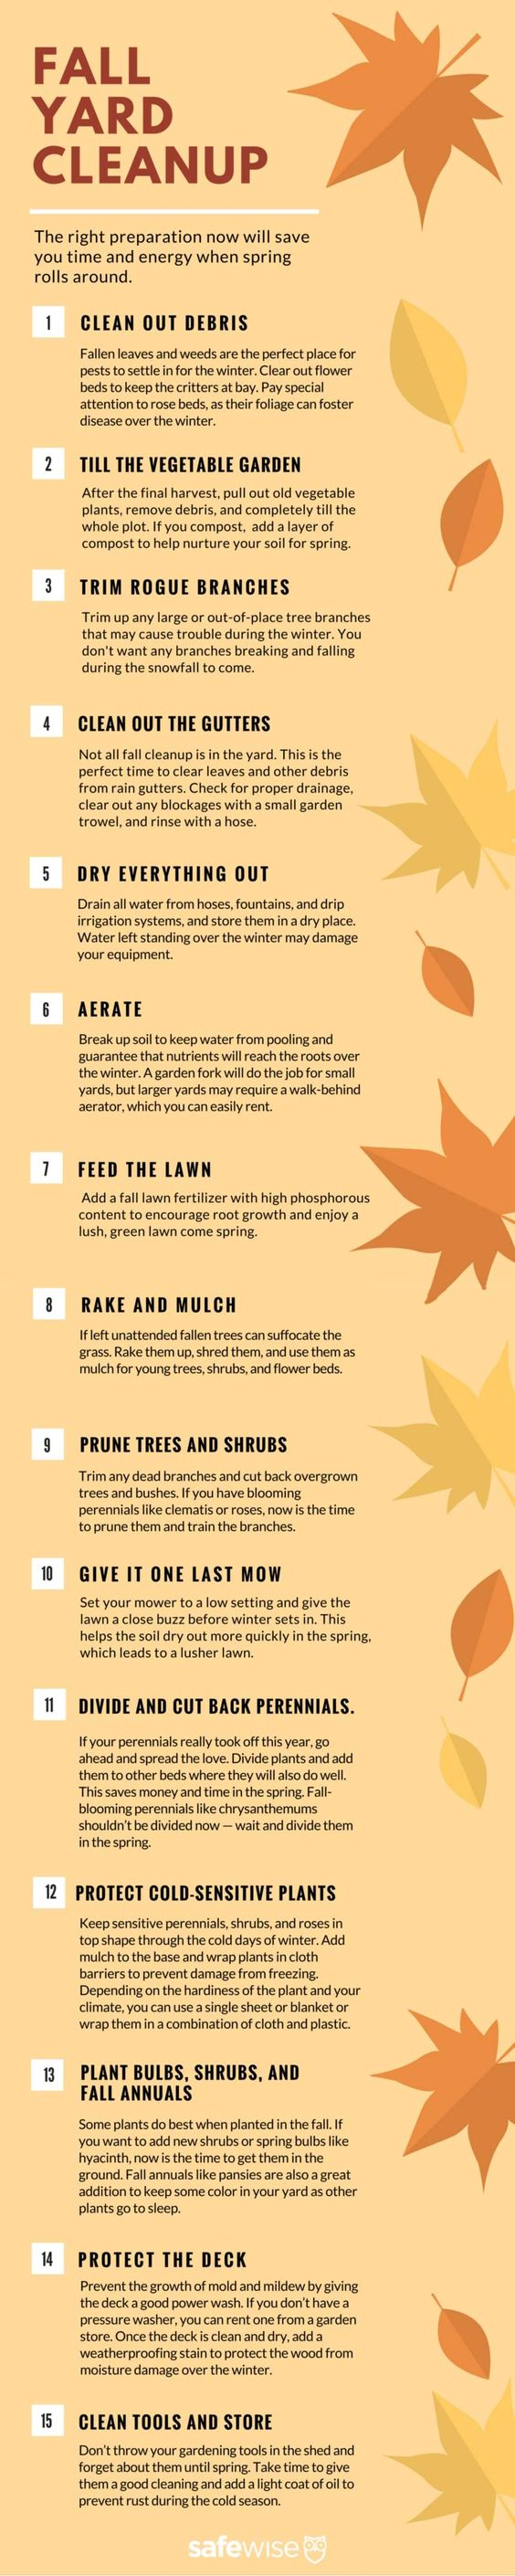 Fall Yard Cleanup Checklist. The more prep you do in the fall, the greener your lawn is come spring. And you'll be more likely to plant in the spring if everything is clean and ready!: